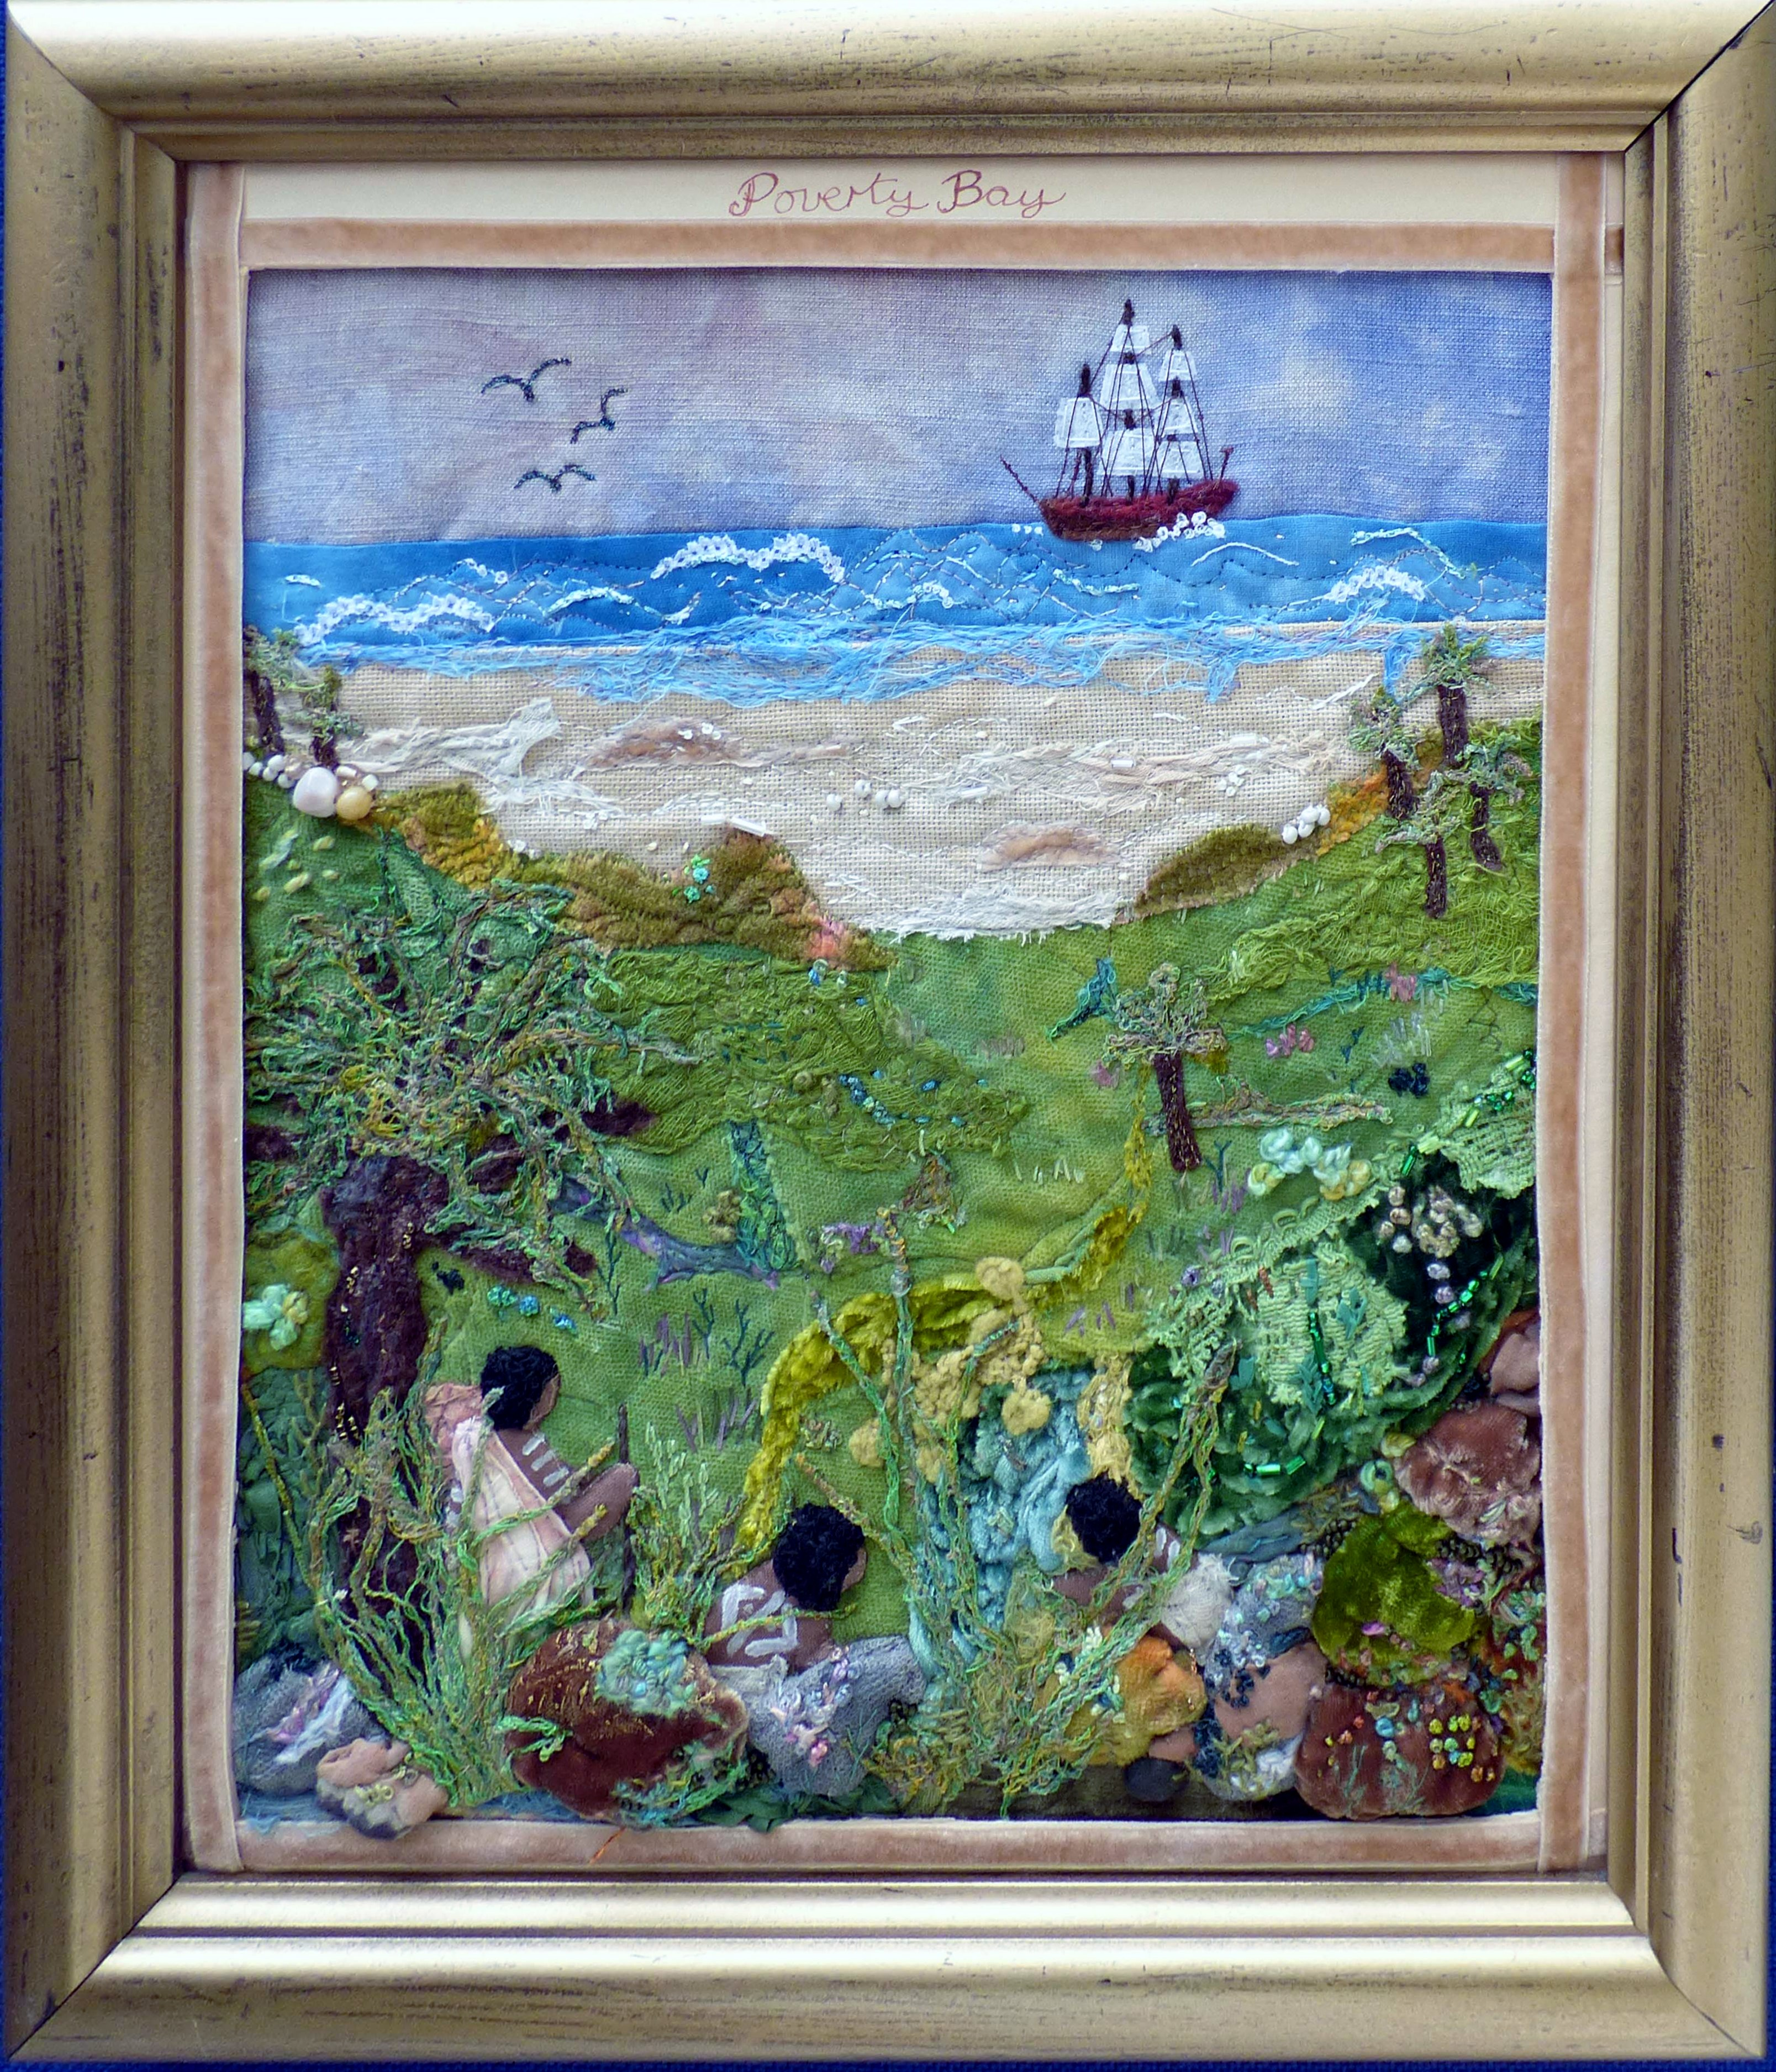 POVERTY BAY by Mal Ralston, Endeavour exhibition at Sefton Park Palm House 2019